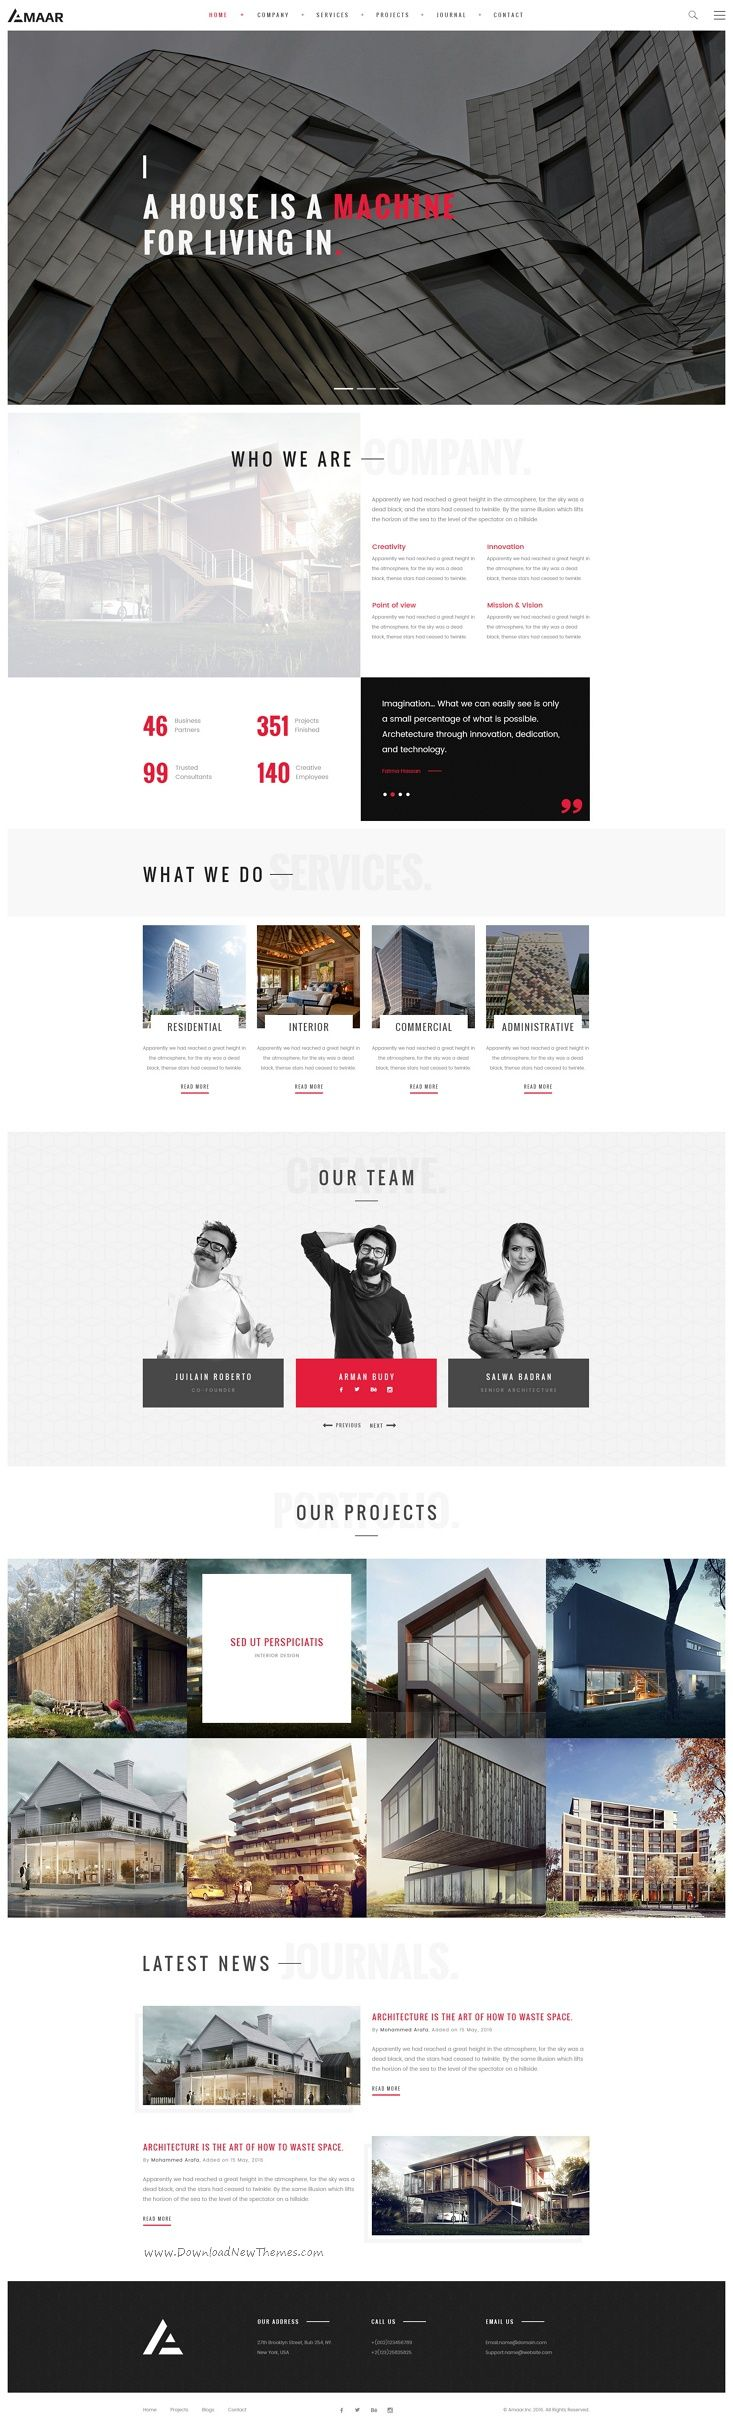 Amaar is a creative #PSD template for #Architecture, #Interior Design, Creative Design, Portfolio & Construction Business website download now➩ https://themeforest.net/item/amaar-creative-architecture-interior-psd-template/18711828?ref=Datasata